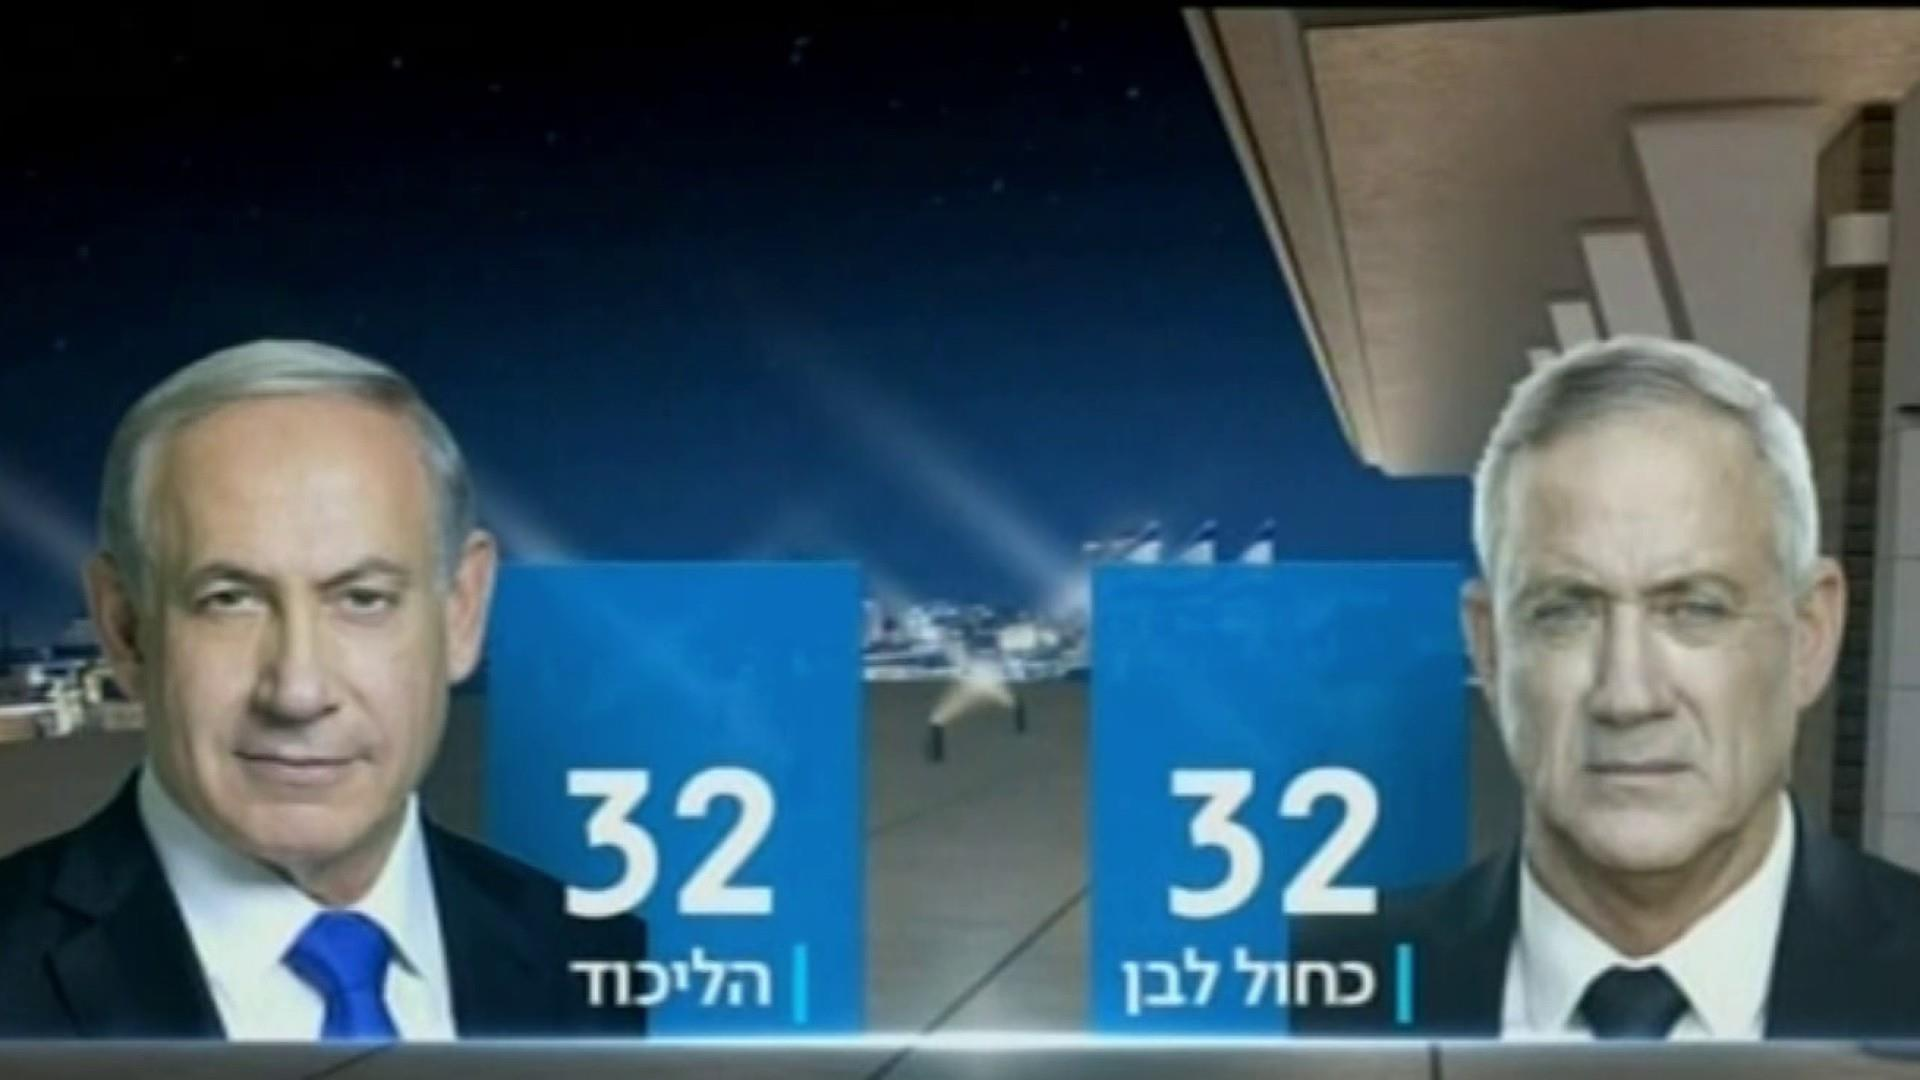 Netanyahu cancels trip to U.N. as he appears to fall short in Israel elections